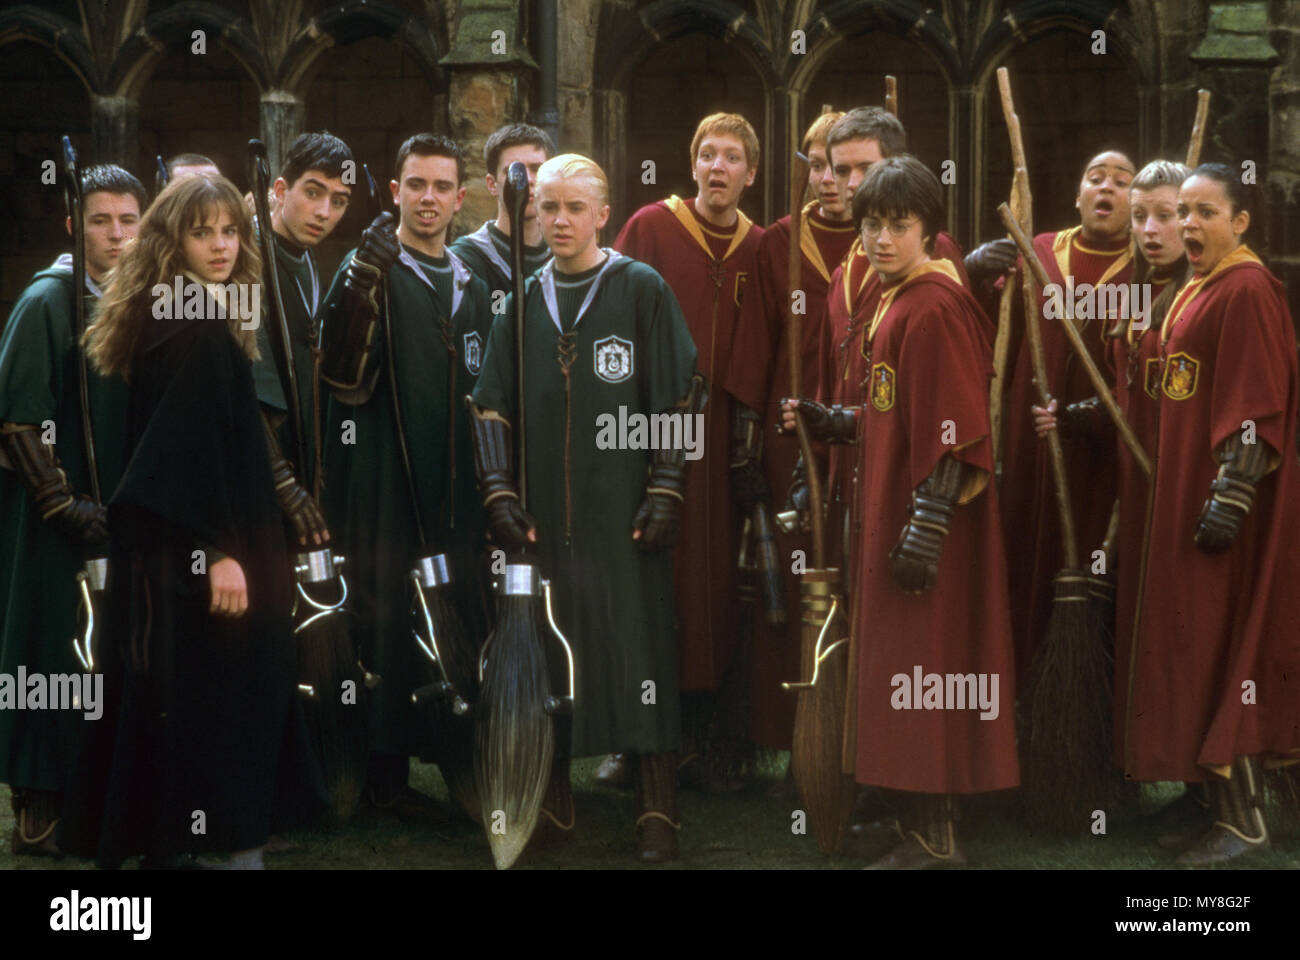 HARRY POTTER AND THE CHAMBER OF SECRETS 2002 Warner Bros film - Stock Image